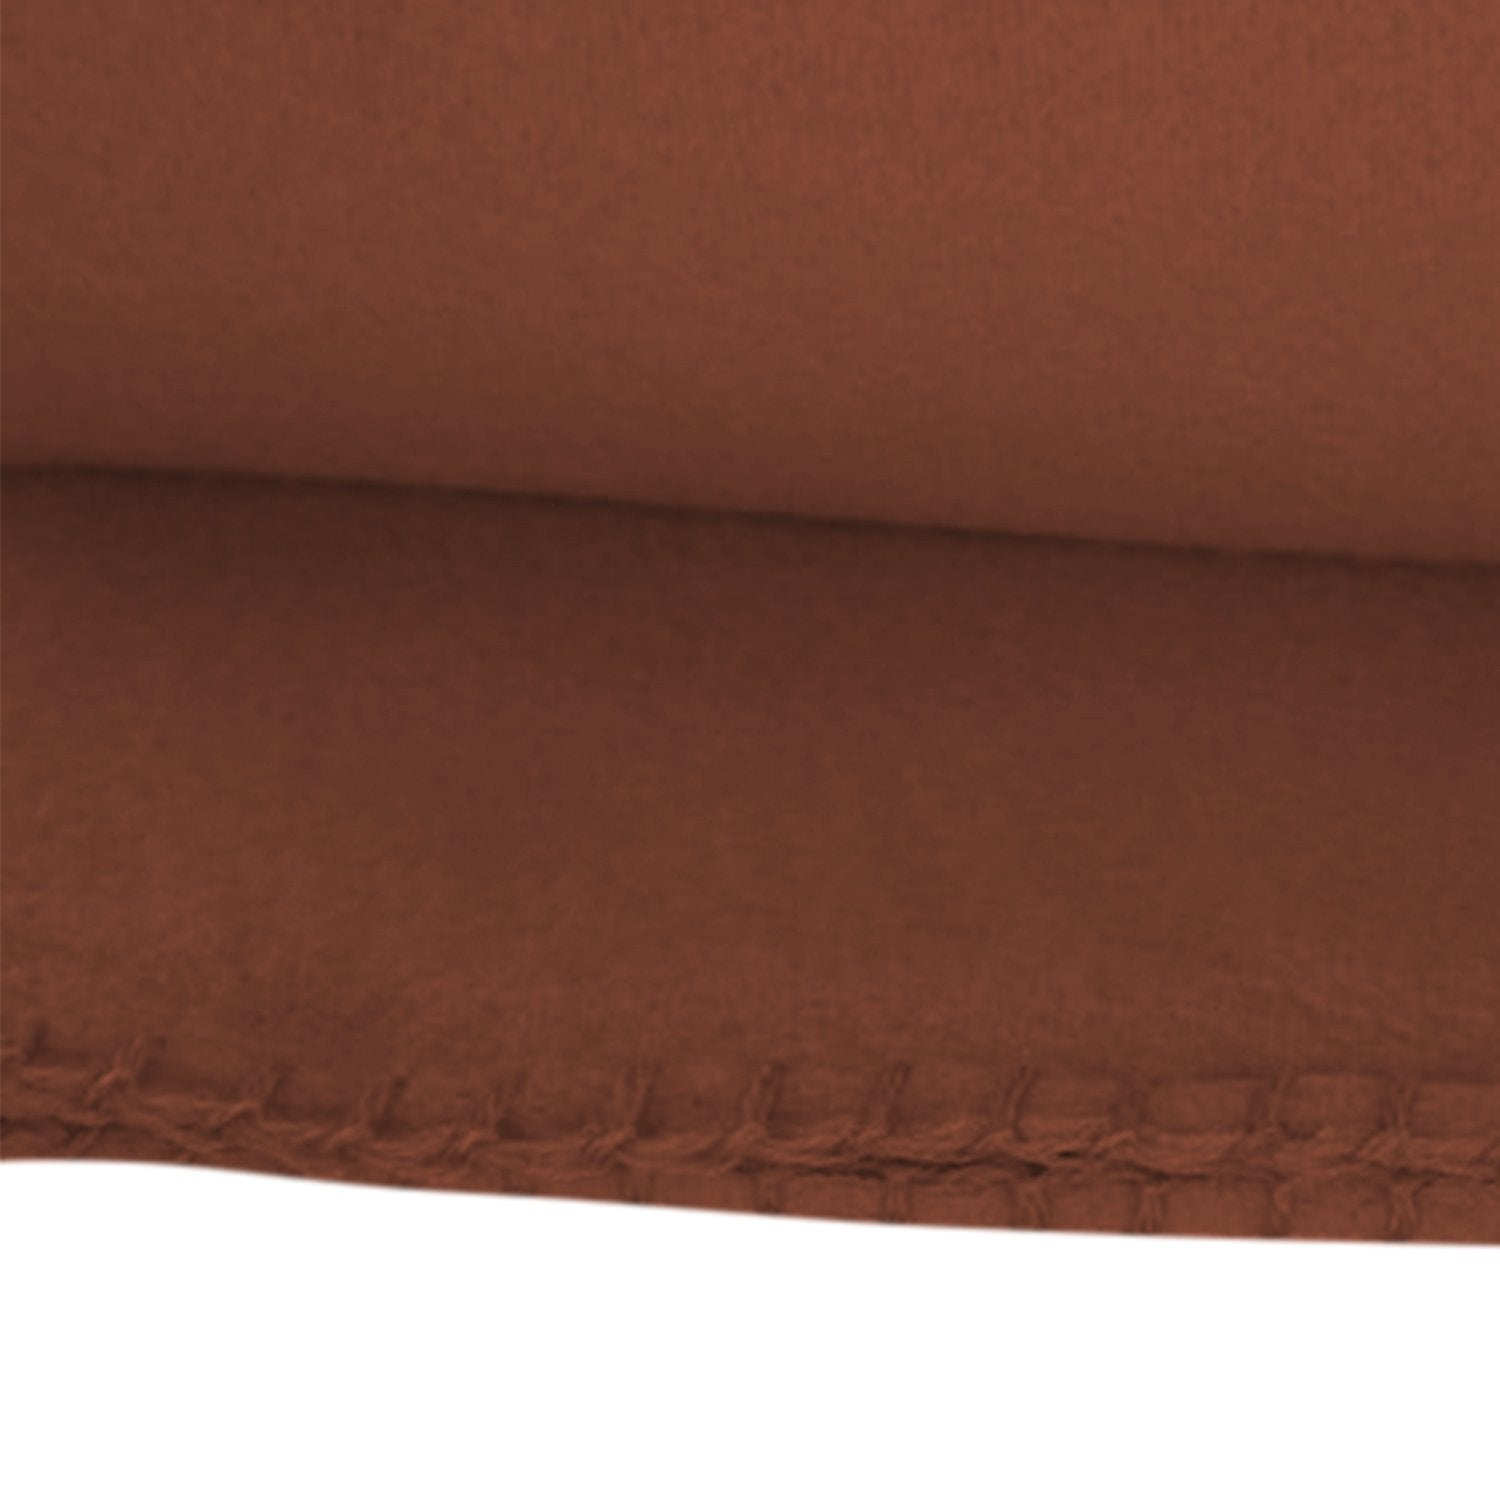 Imperial Home Cozy 50 X 60 Fleece Throw Blanket (Brown)